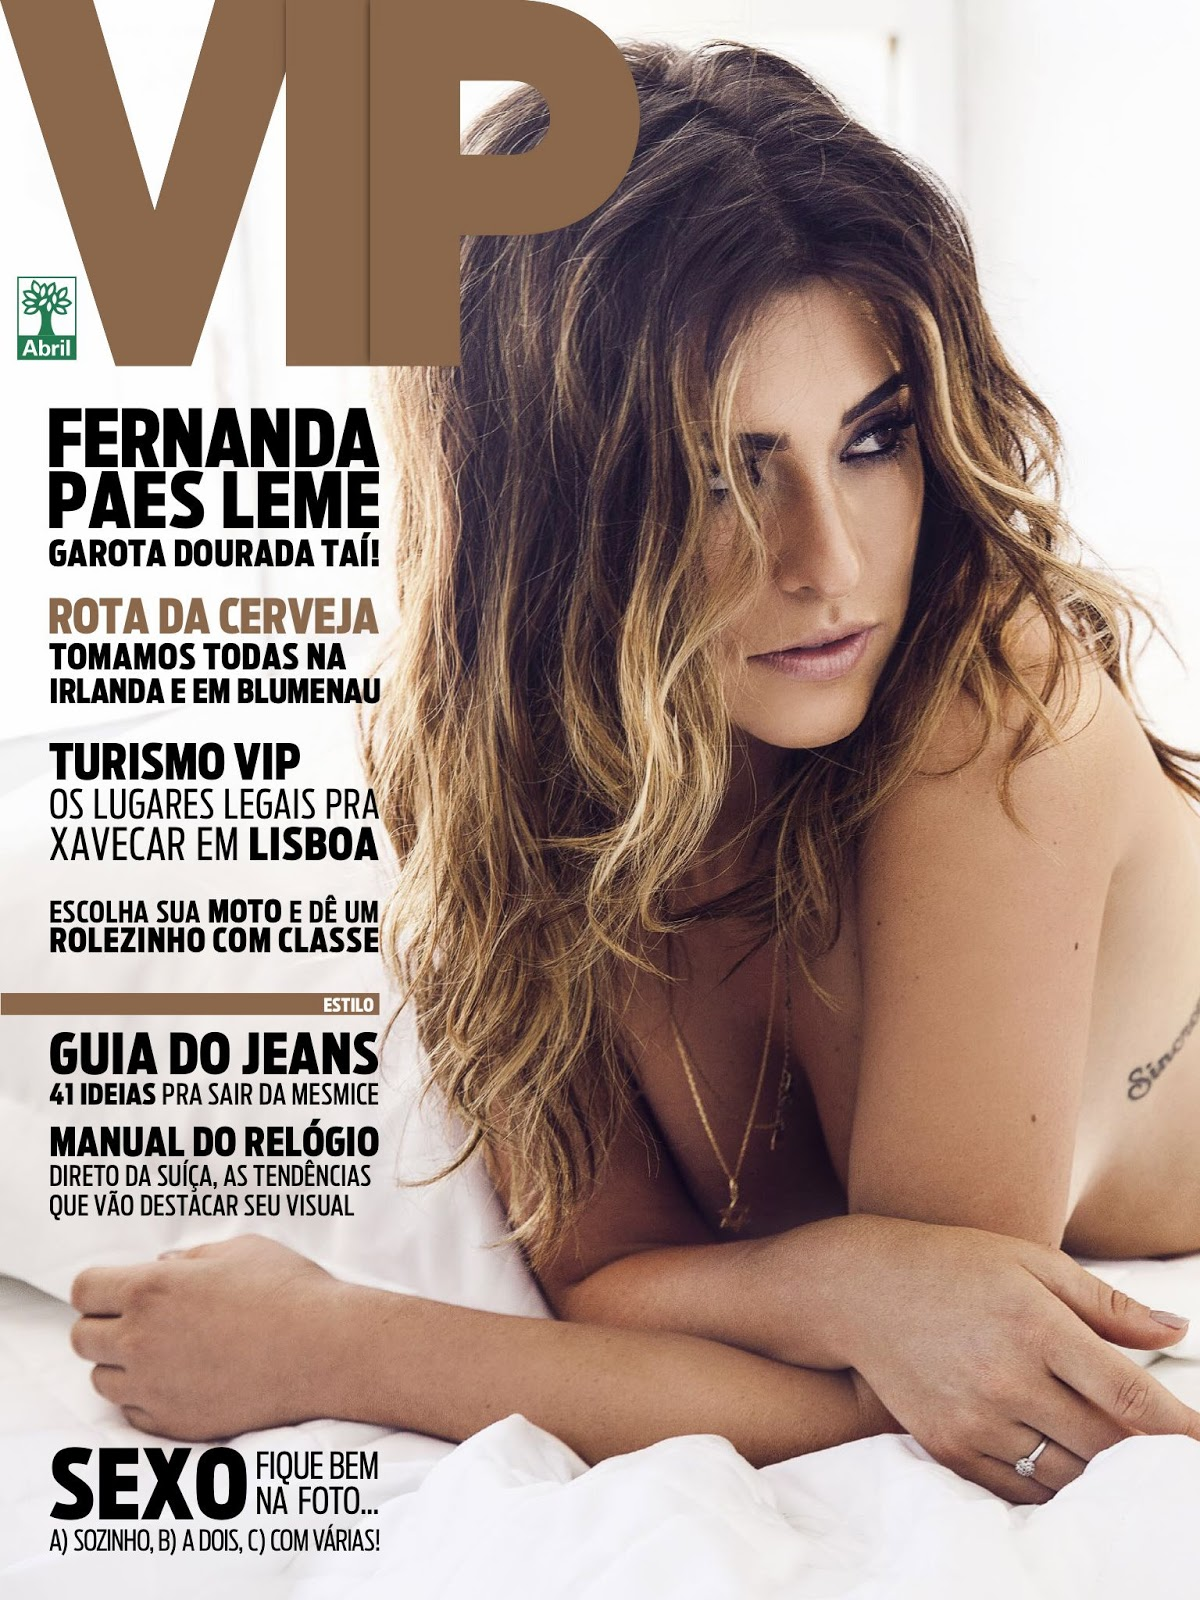 Download - Fernanda Paes Leme : Revista Vip – Maio 2014 (Completa)